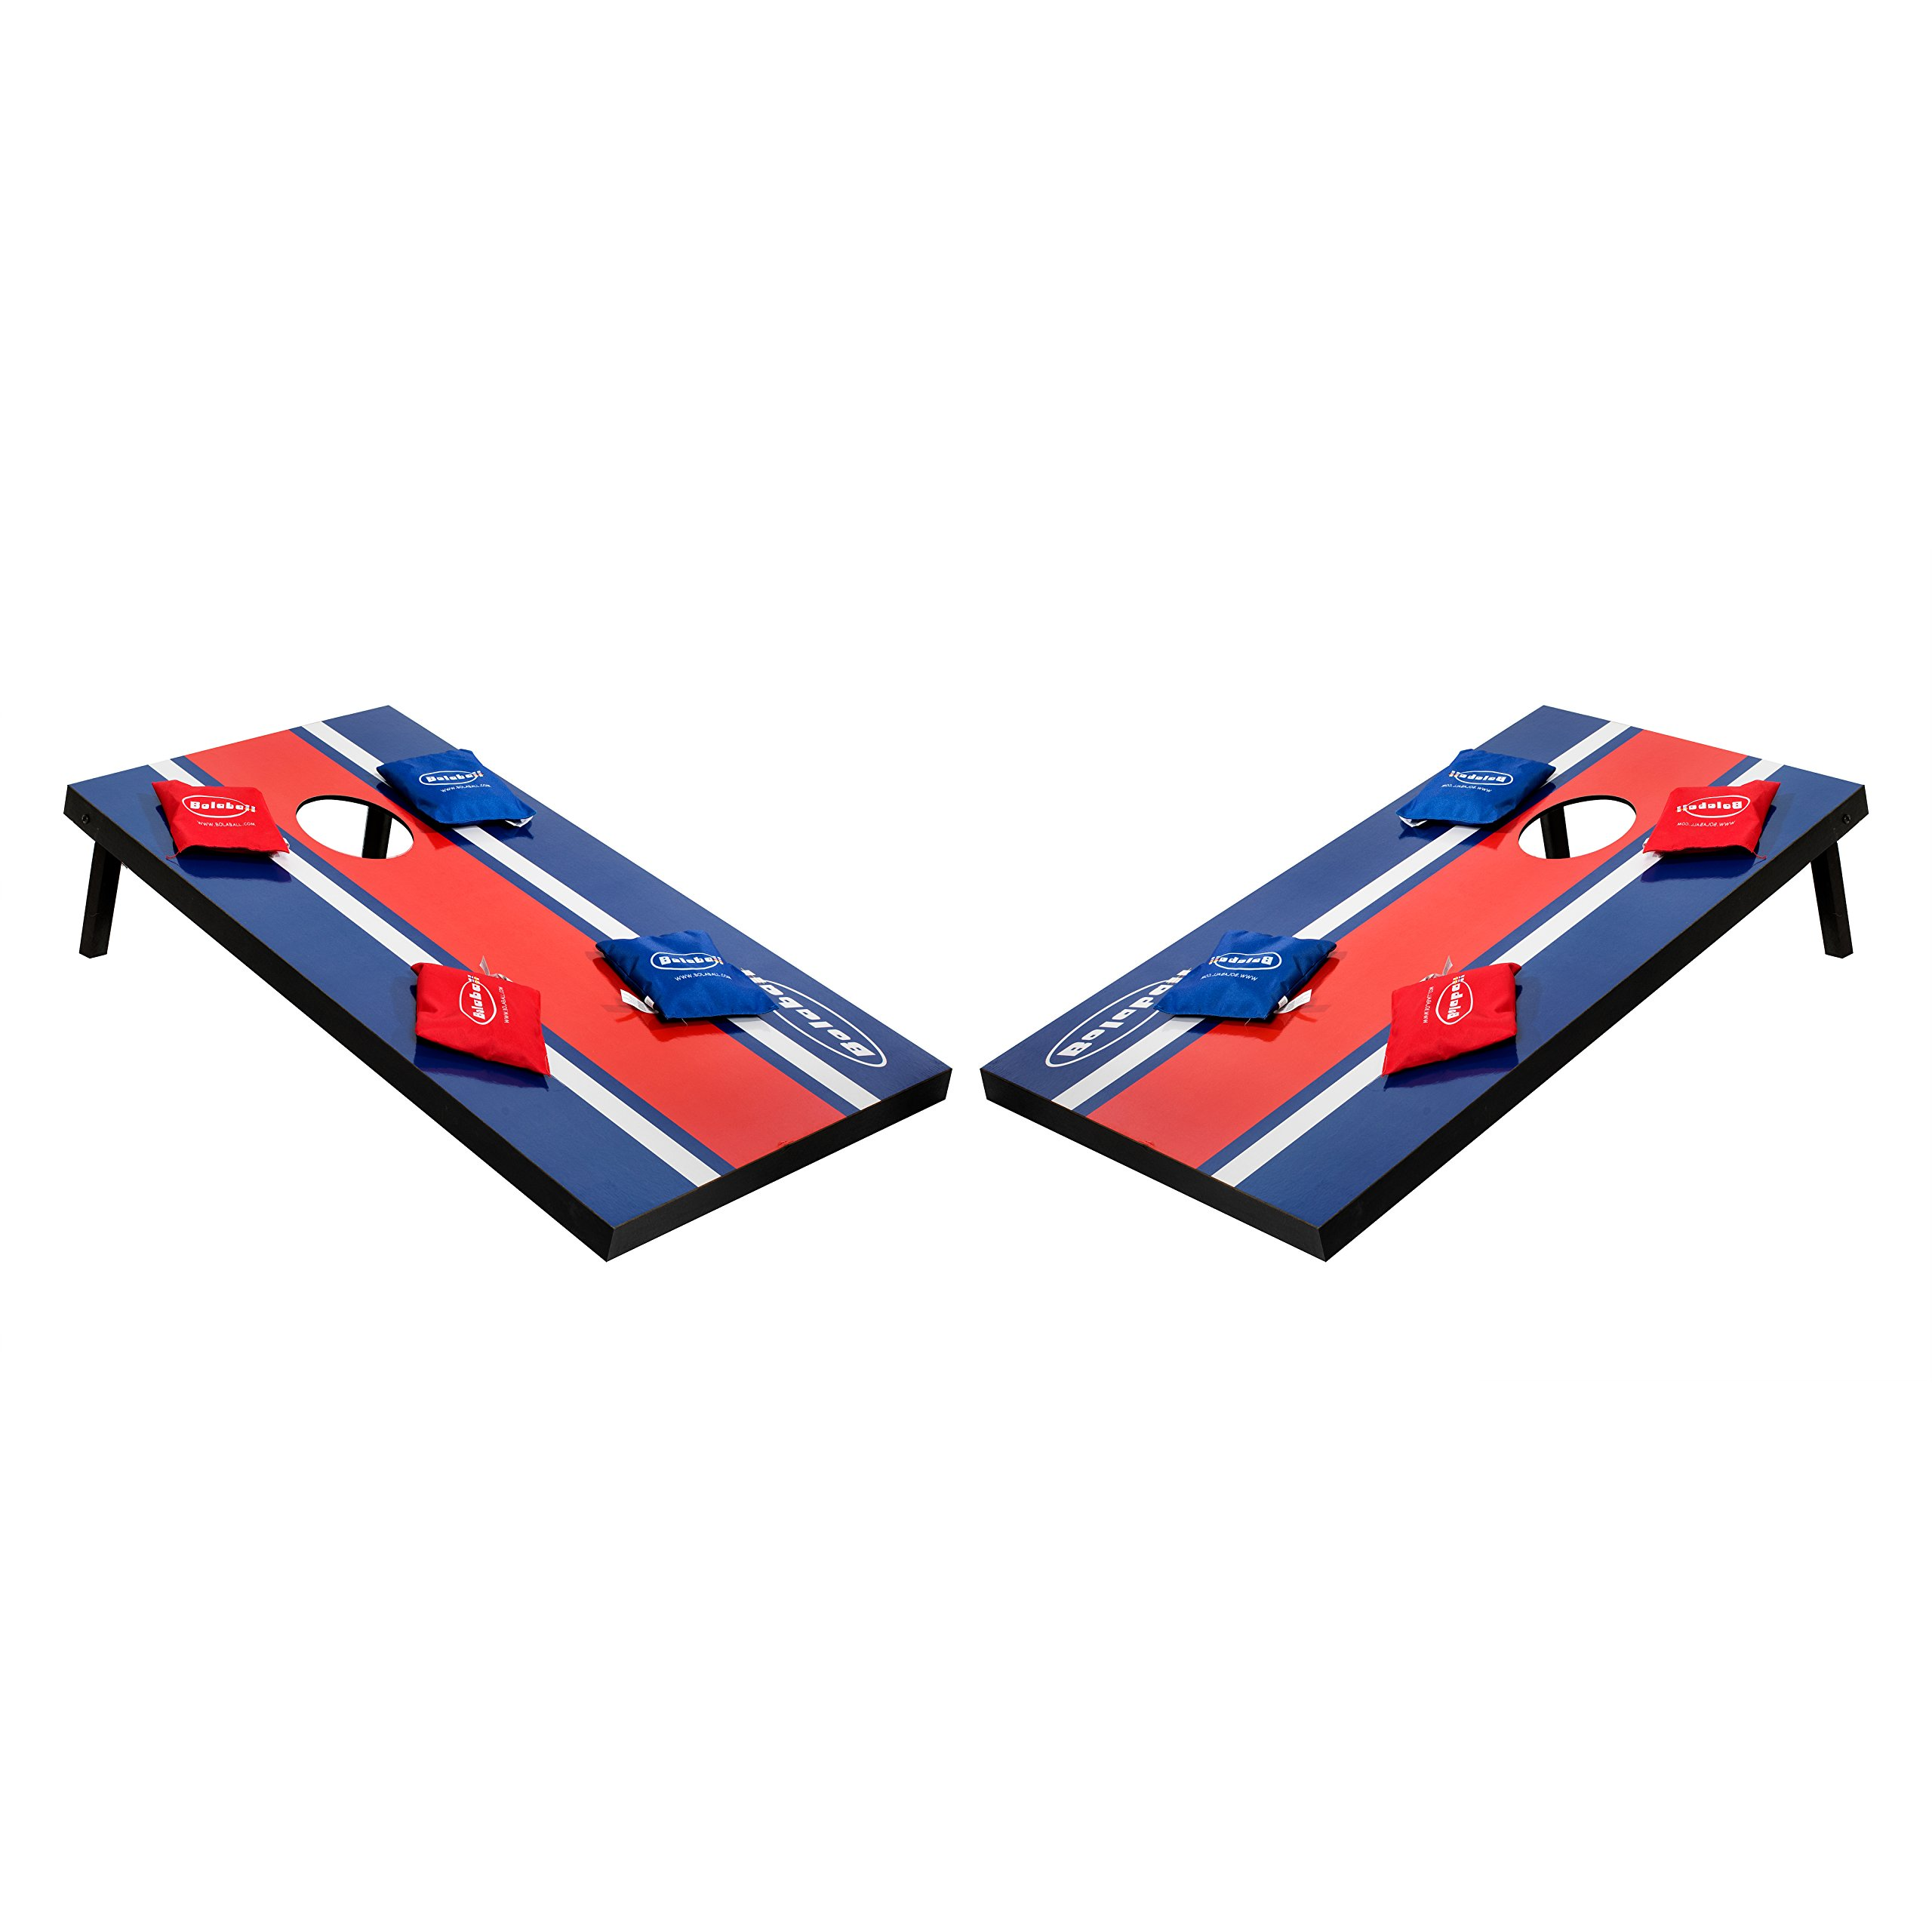 Bolaball Bean Bag Toss, Cornhole Game Set, 8 Bean Bags, Portable Handles, Perfect Parties, Camping, Tailgating, 3ft x 2ft by Bolaball